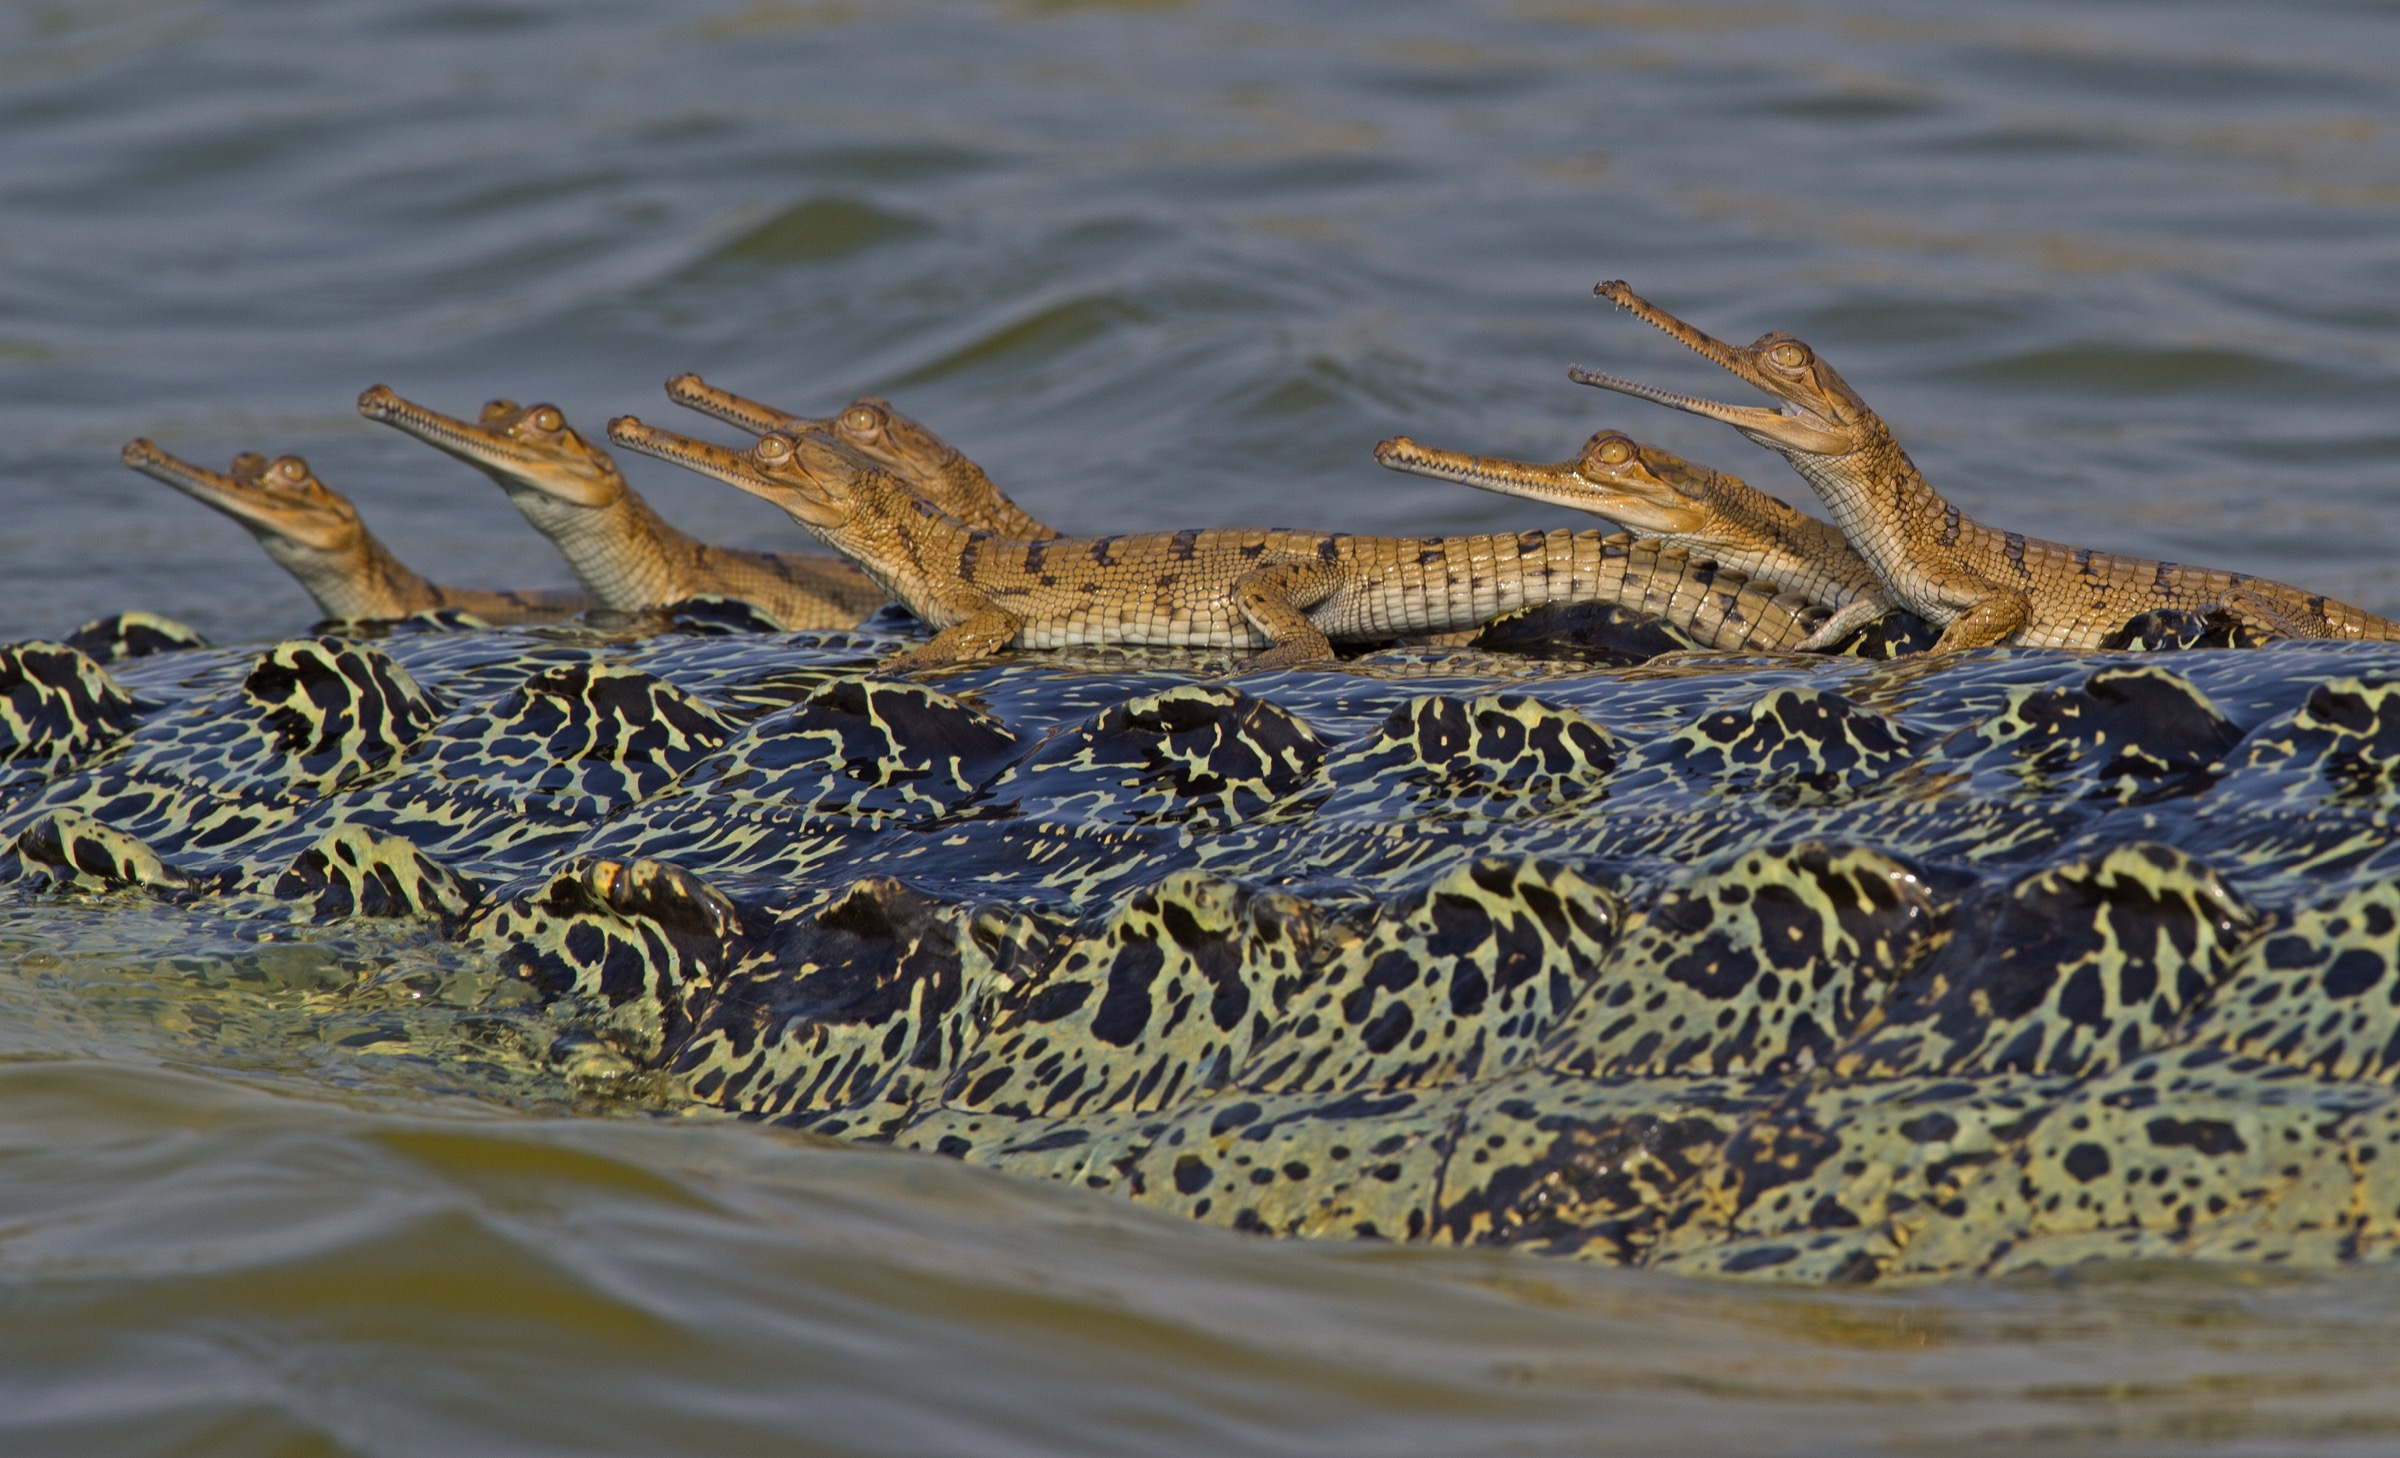 Hatchlings bask in the sun on the back of the resident adult male—most likely their father.